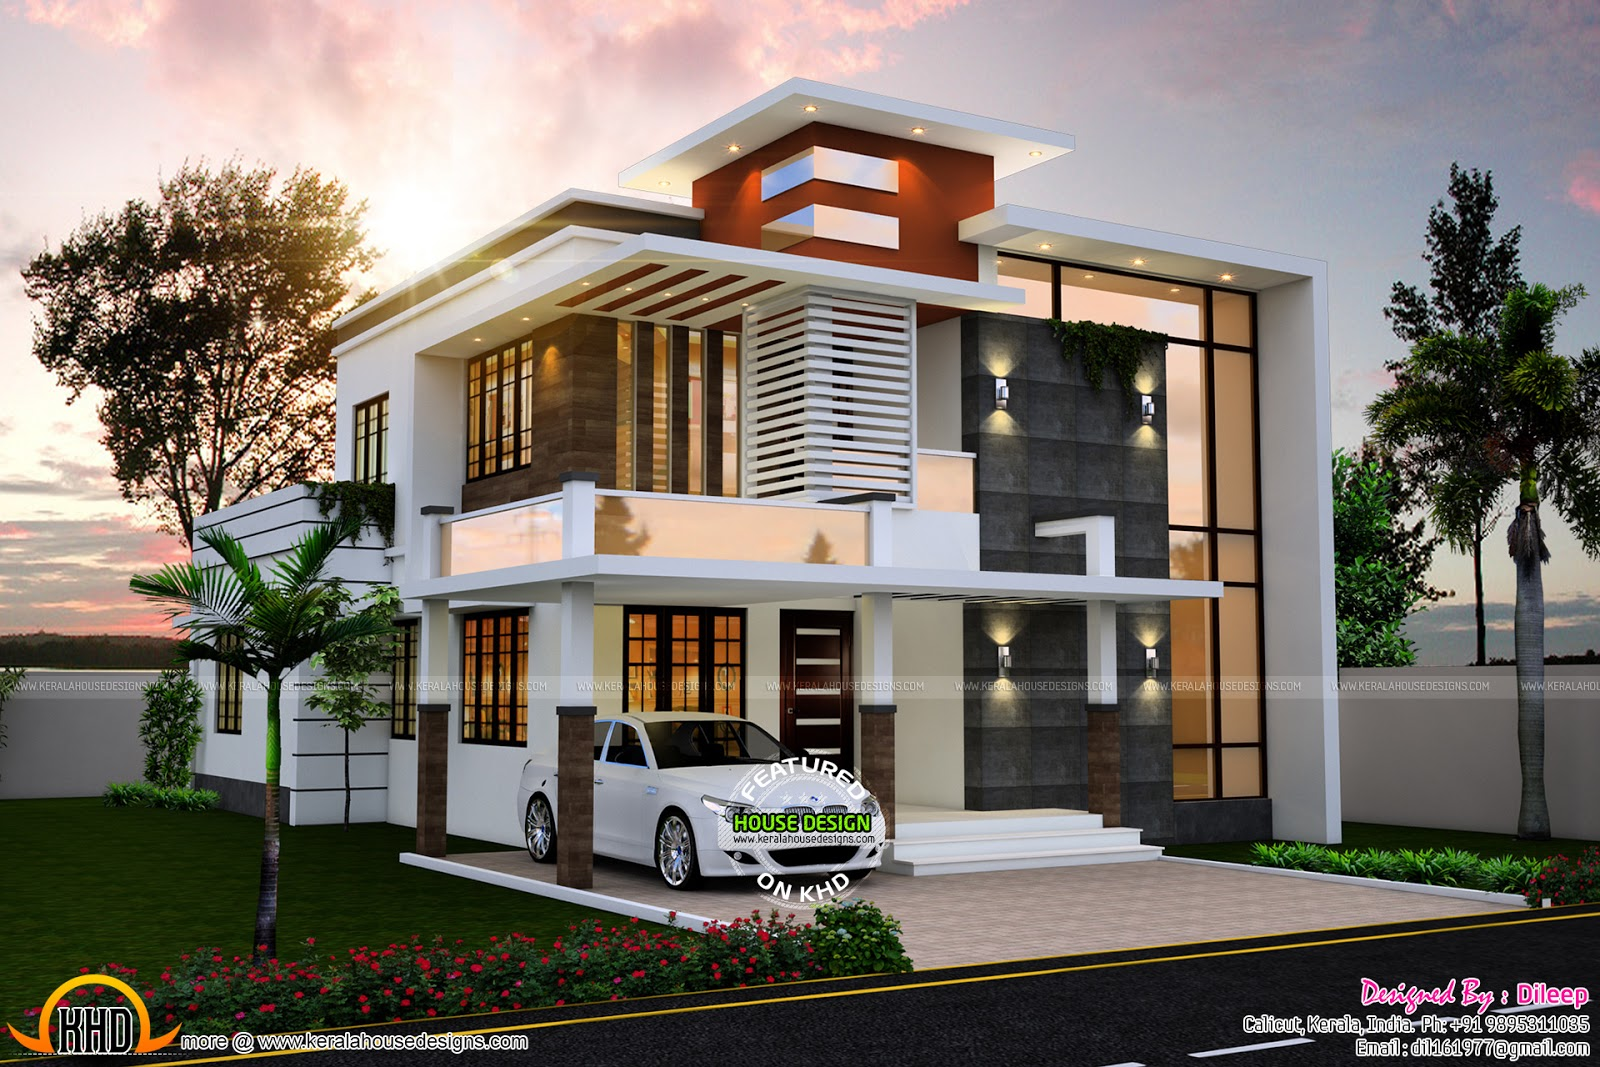 2194 sq ft nice contemporary house kerala home design and floor plans - Nice home designs ...